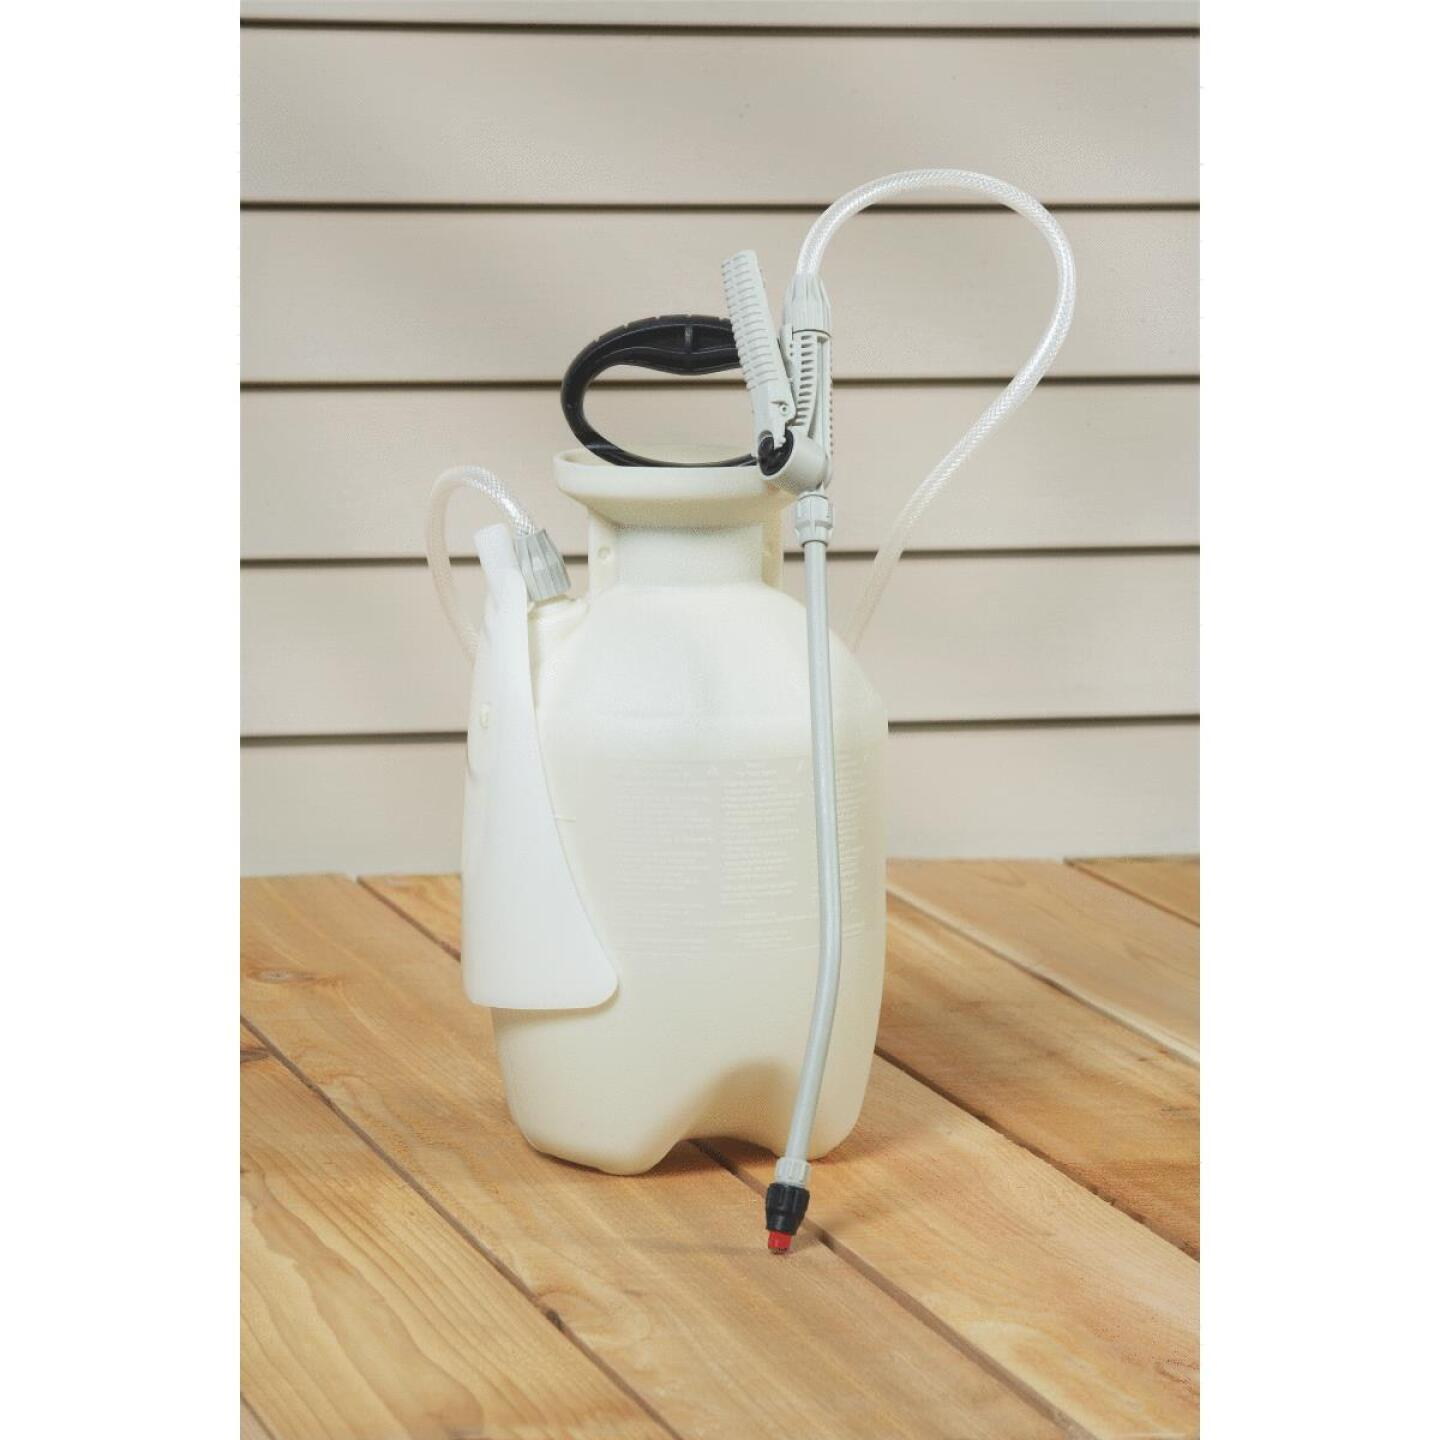 Chapin Clean-N-Seal 1 Gal. Poly SureSpray Deck Sprayer Image 2